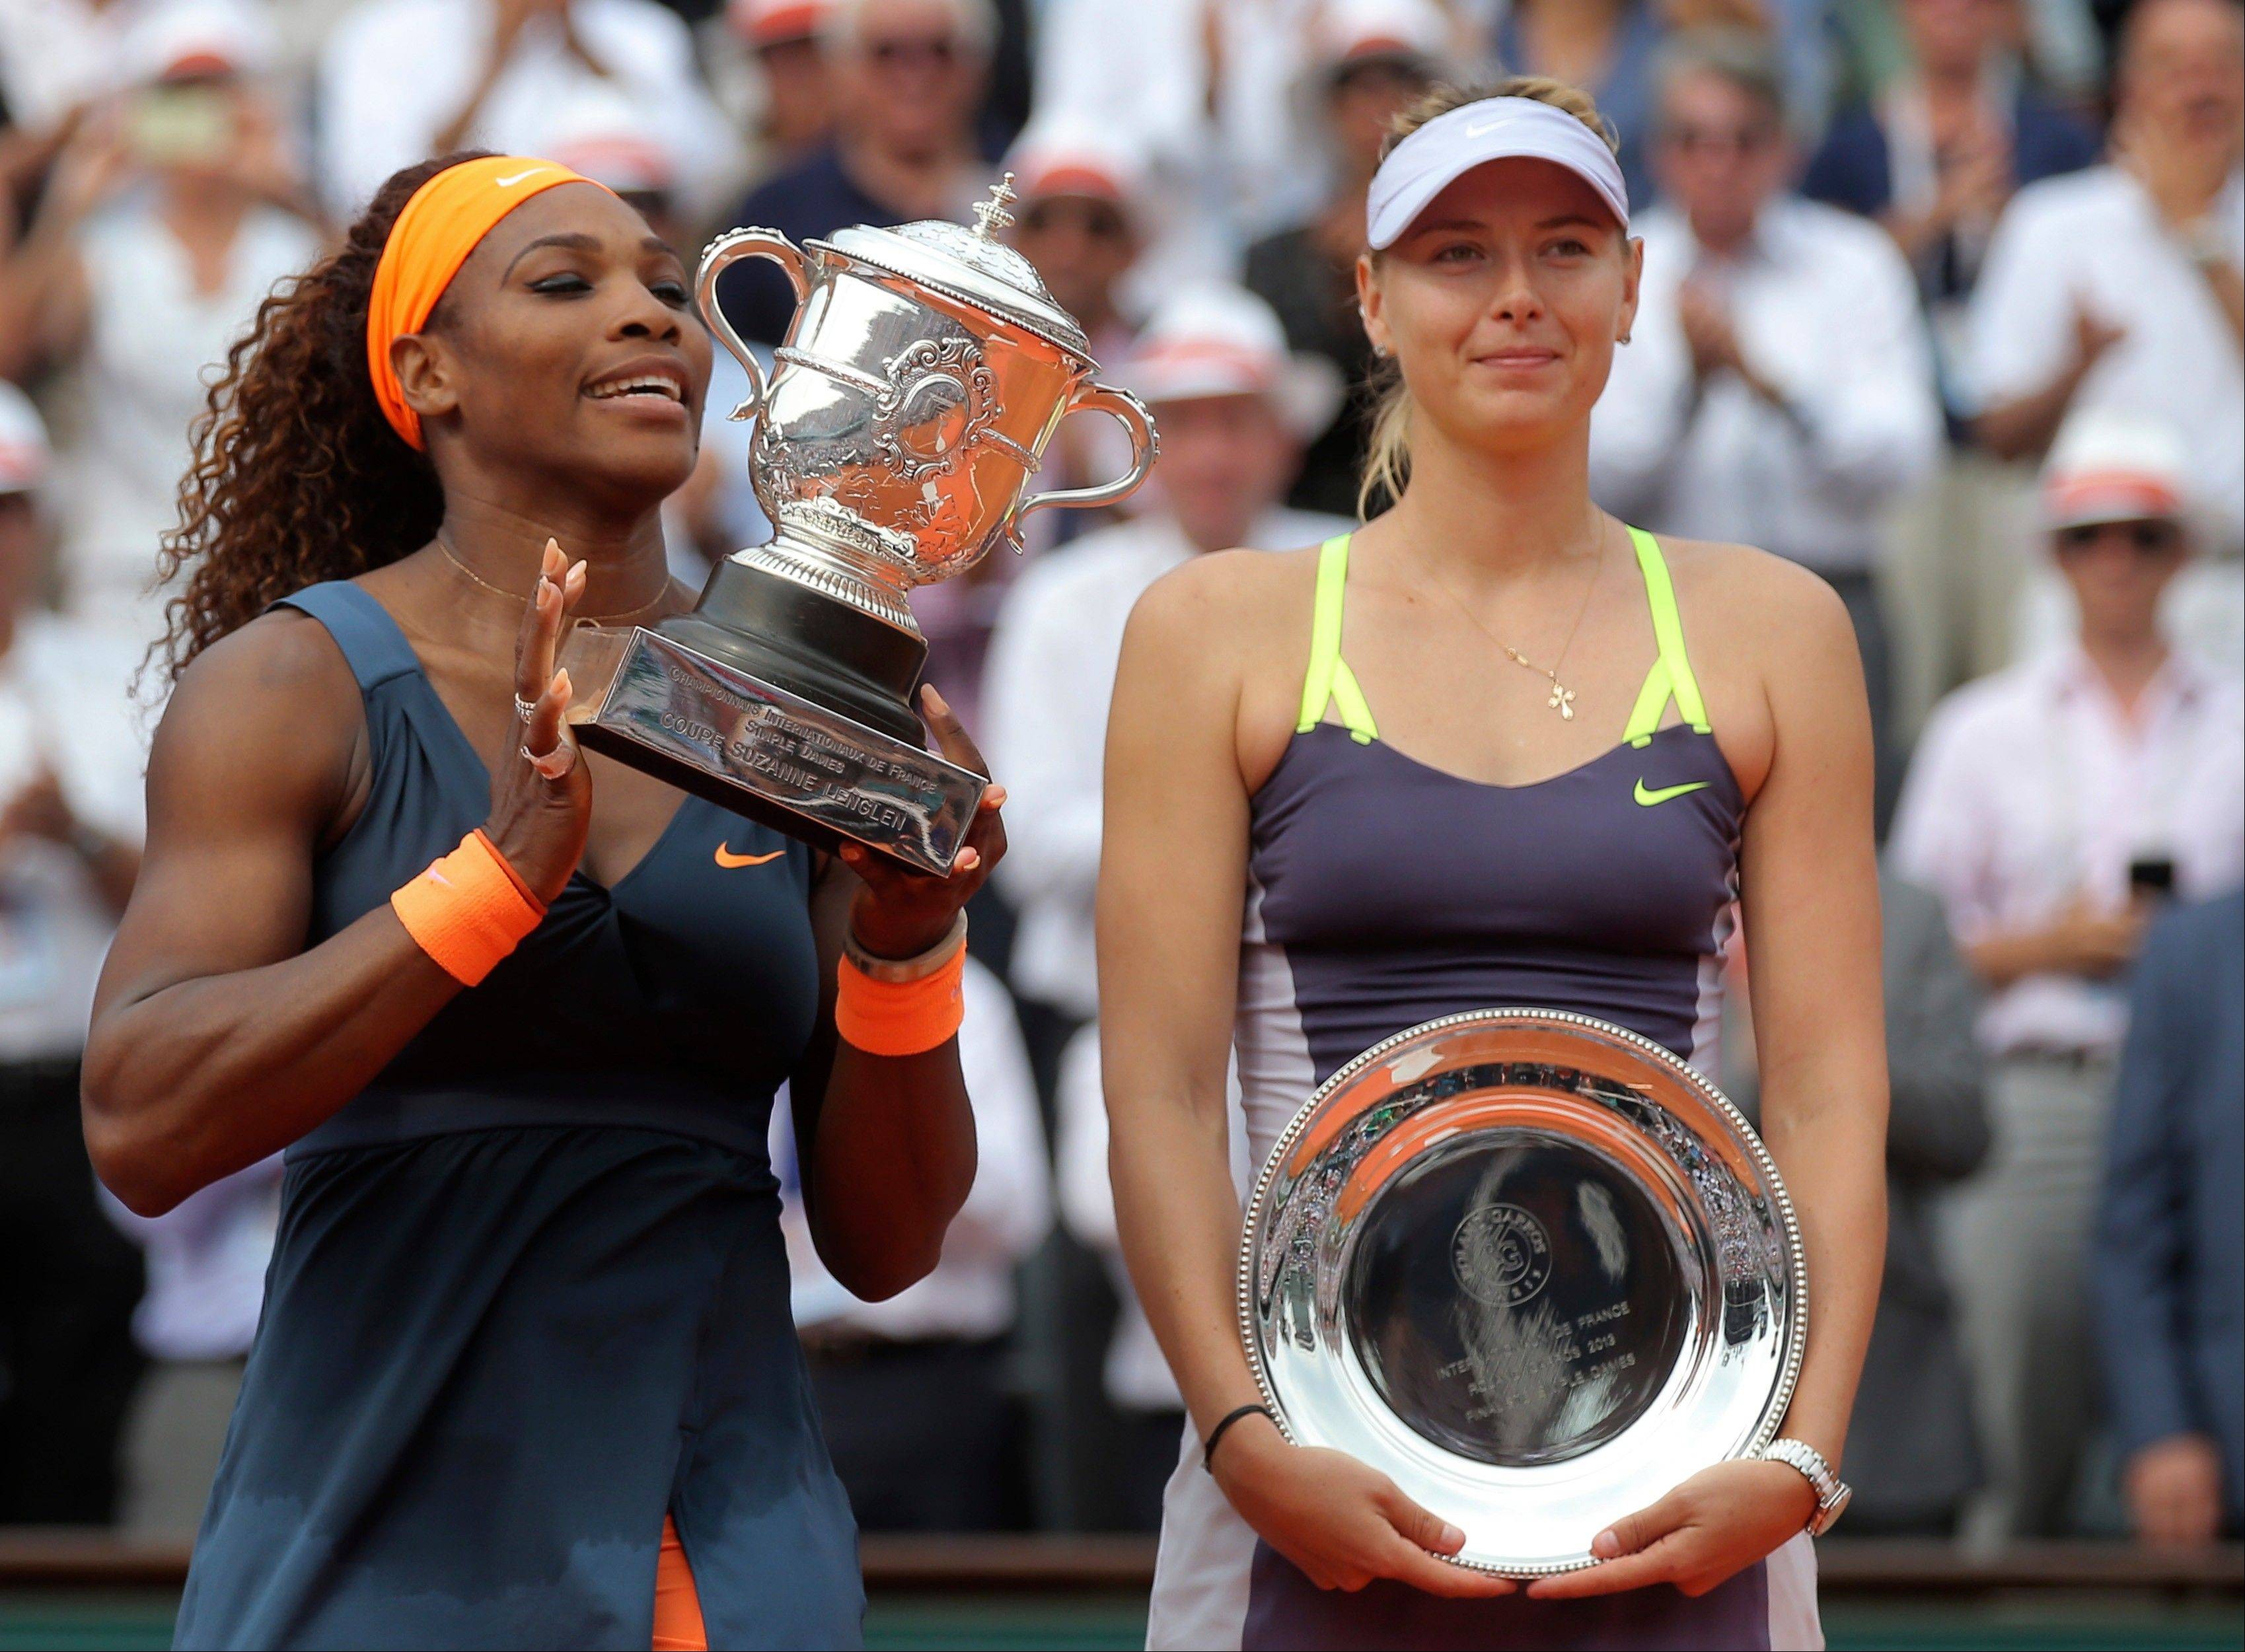 Serena Williams of the U.S., left, holds the winner's cup after defeating Russia's Maria Sharapova after the Women's final match of the French Open tennis tournament earlier this month at the Roland Garros stadium in Paris.